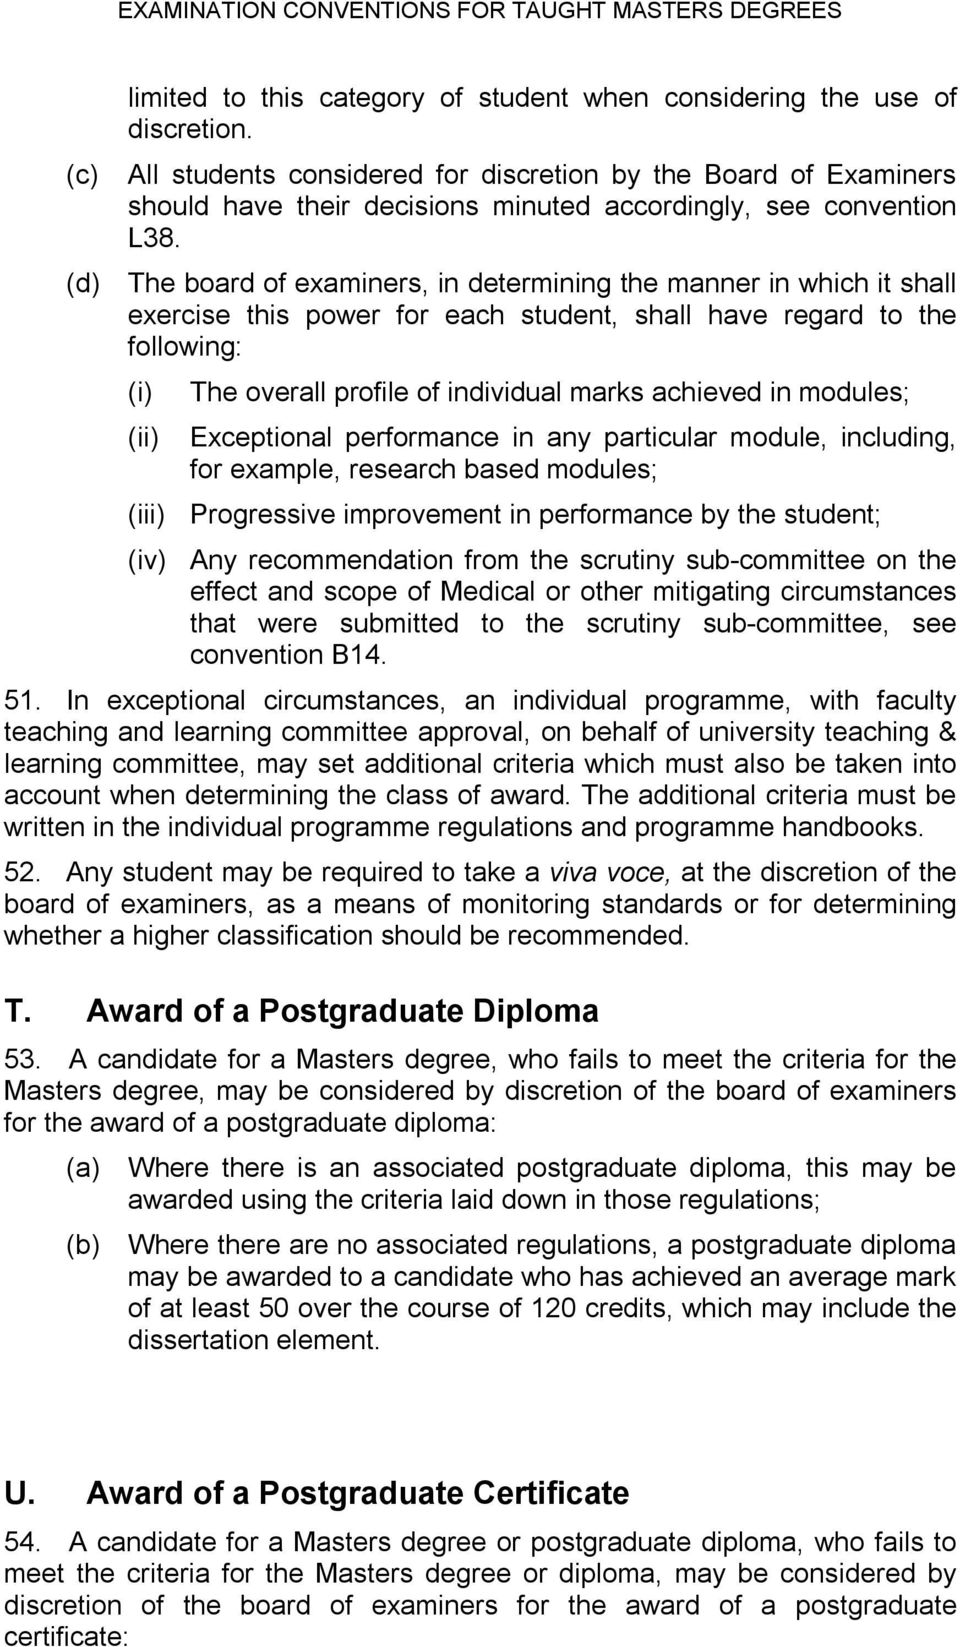 (d) The board of examiners, in determining the manner in which it shall exercise this power for each student, shall have regard to the following: (i) (ii) The overall profile of individual marks